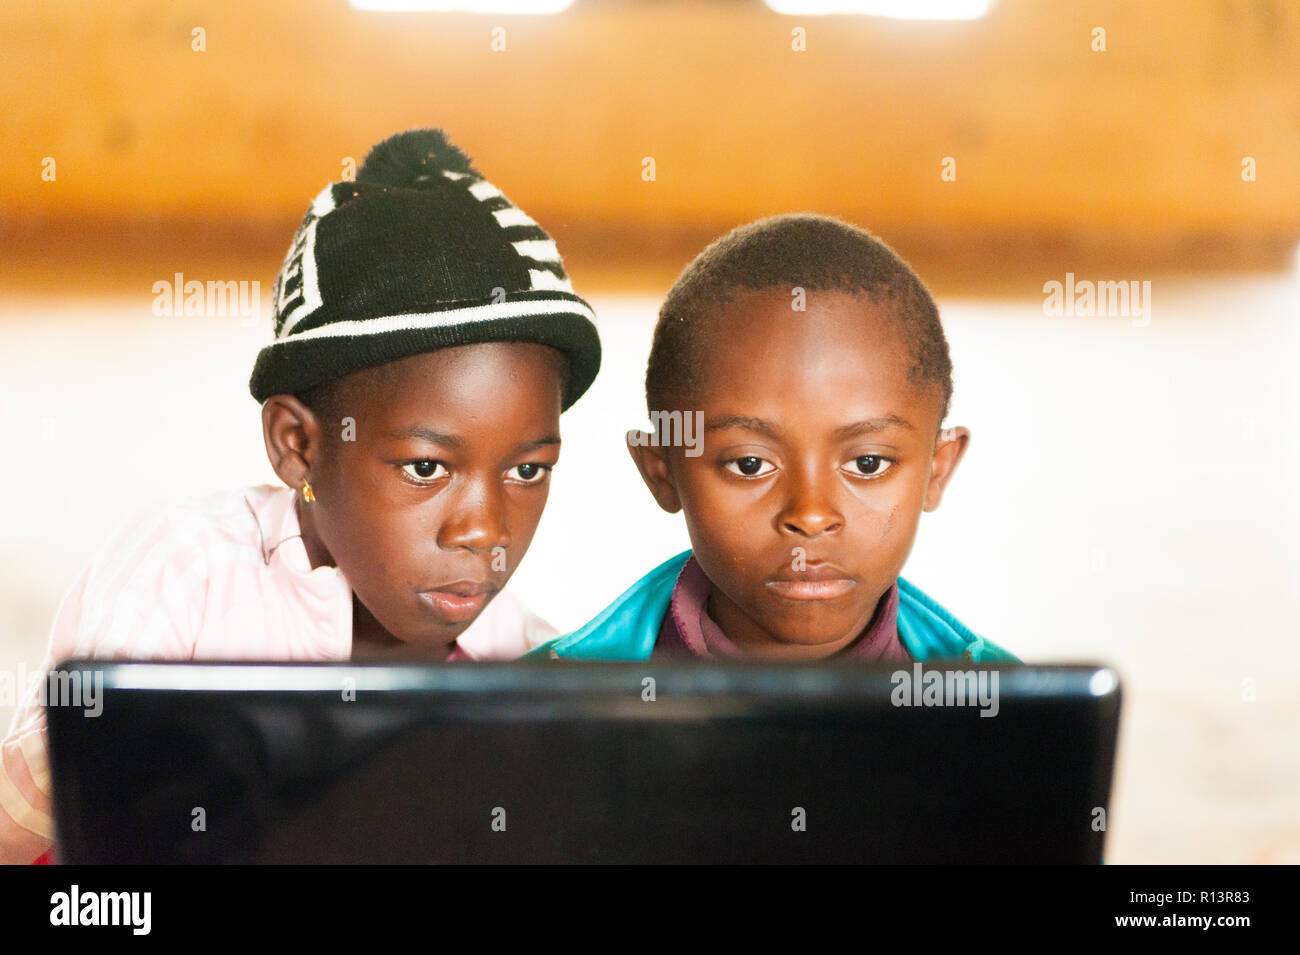 Bafoussam, Cameroon - 06 august 2018: african children, in classroom looking at laptop screen learning to use new technology Stock Photo